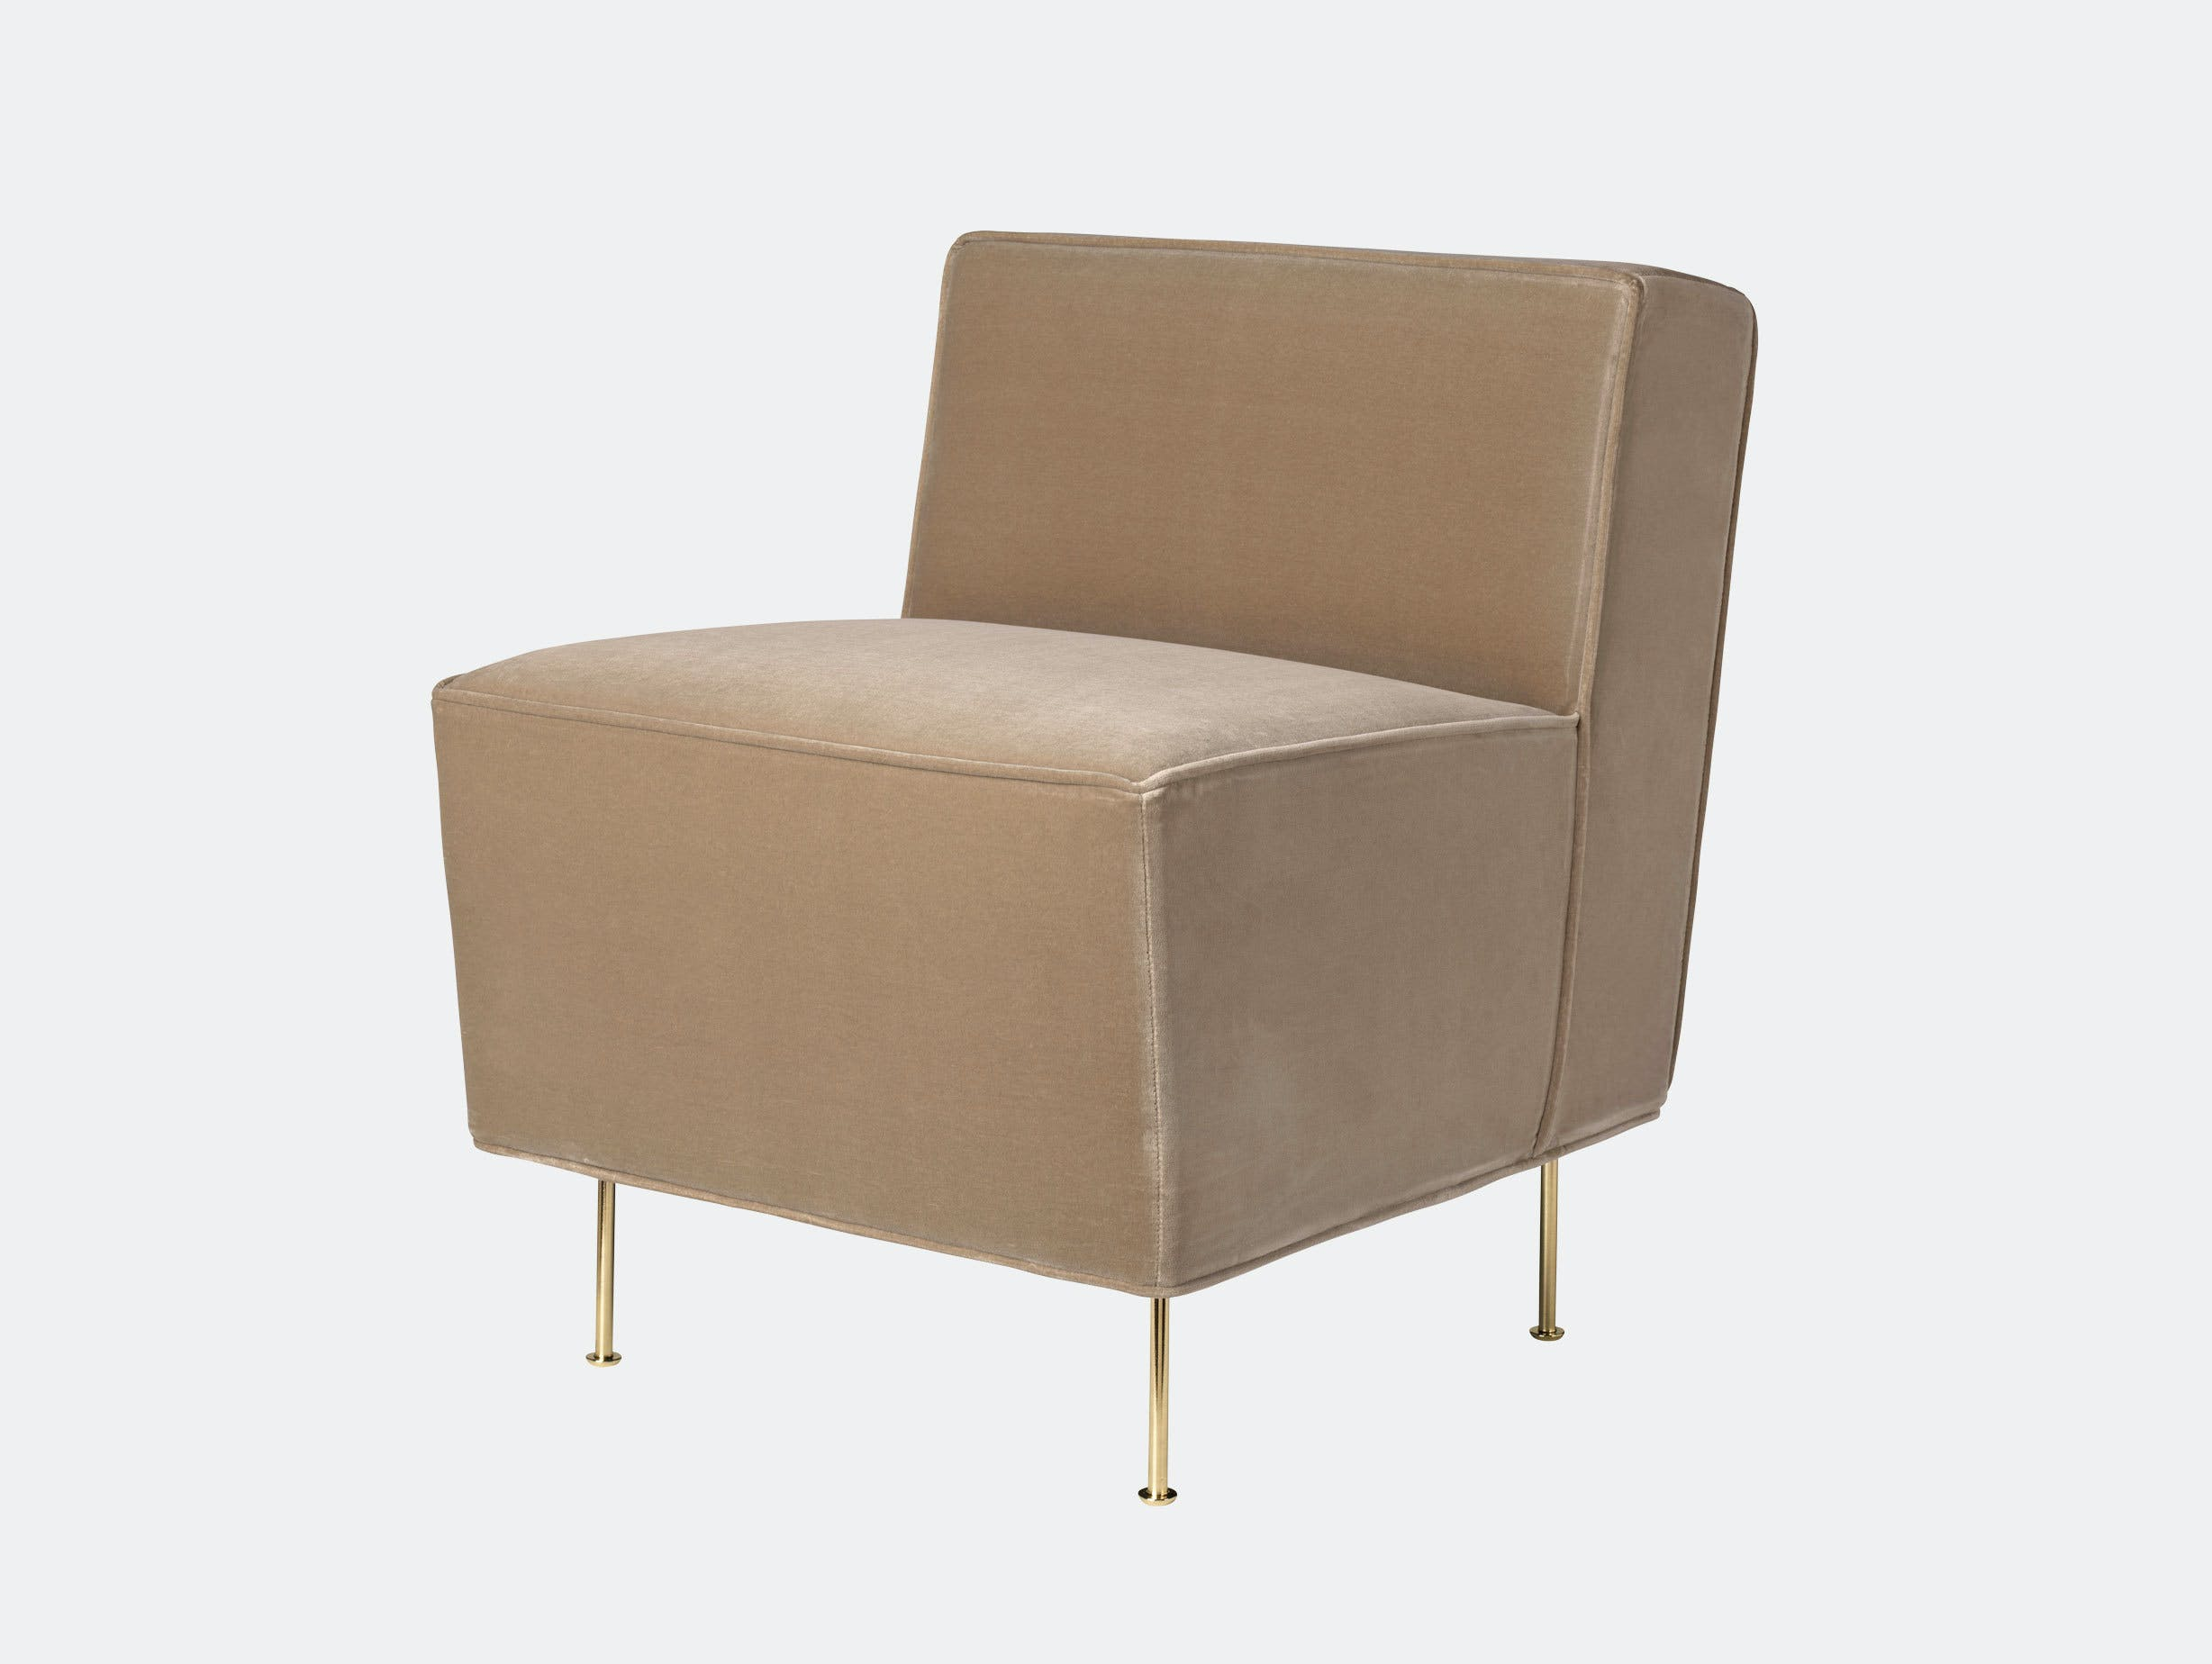 Modern Line Dining Height Lounge Chair image